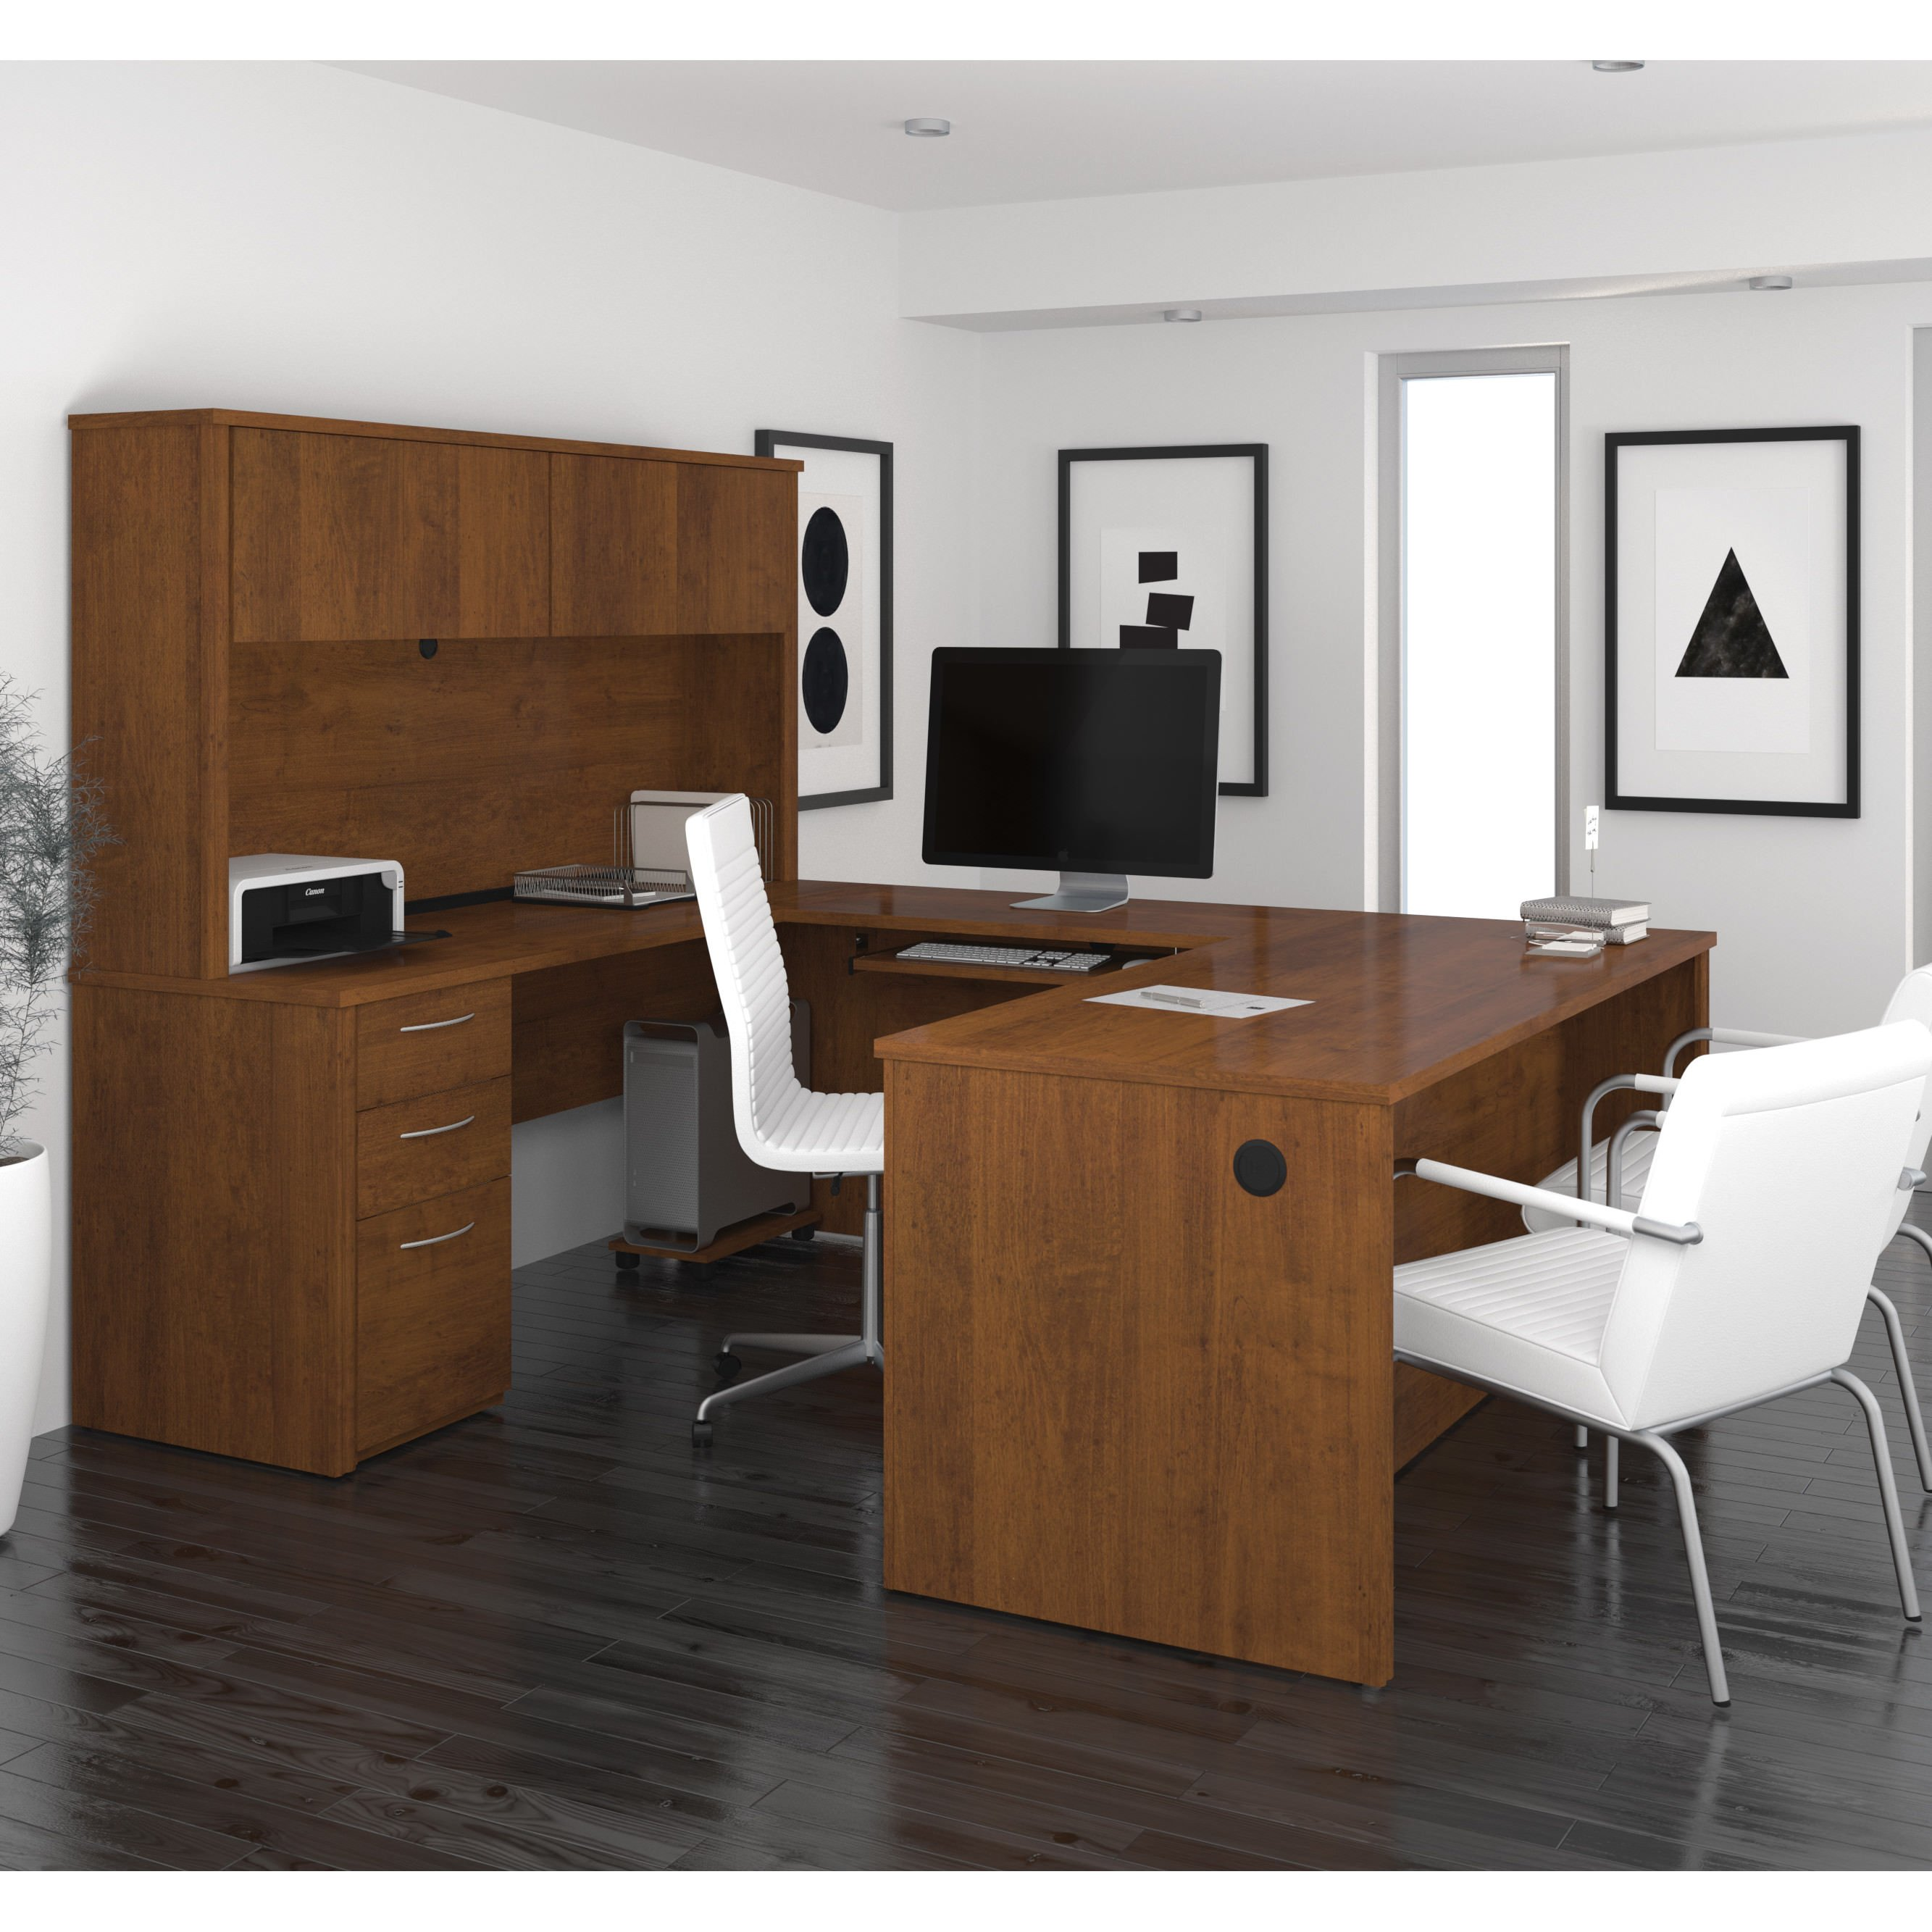 26 Computer Desk Options Buying Guide For 2019